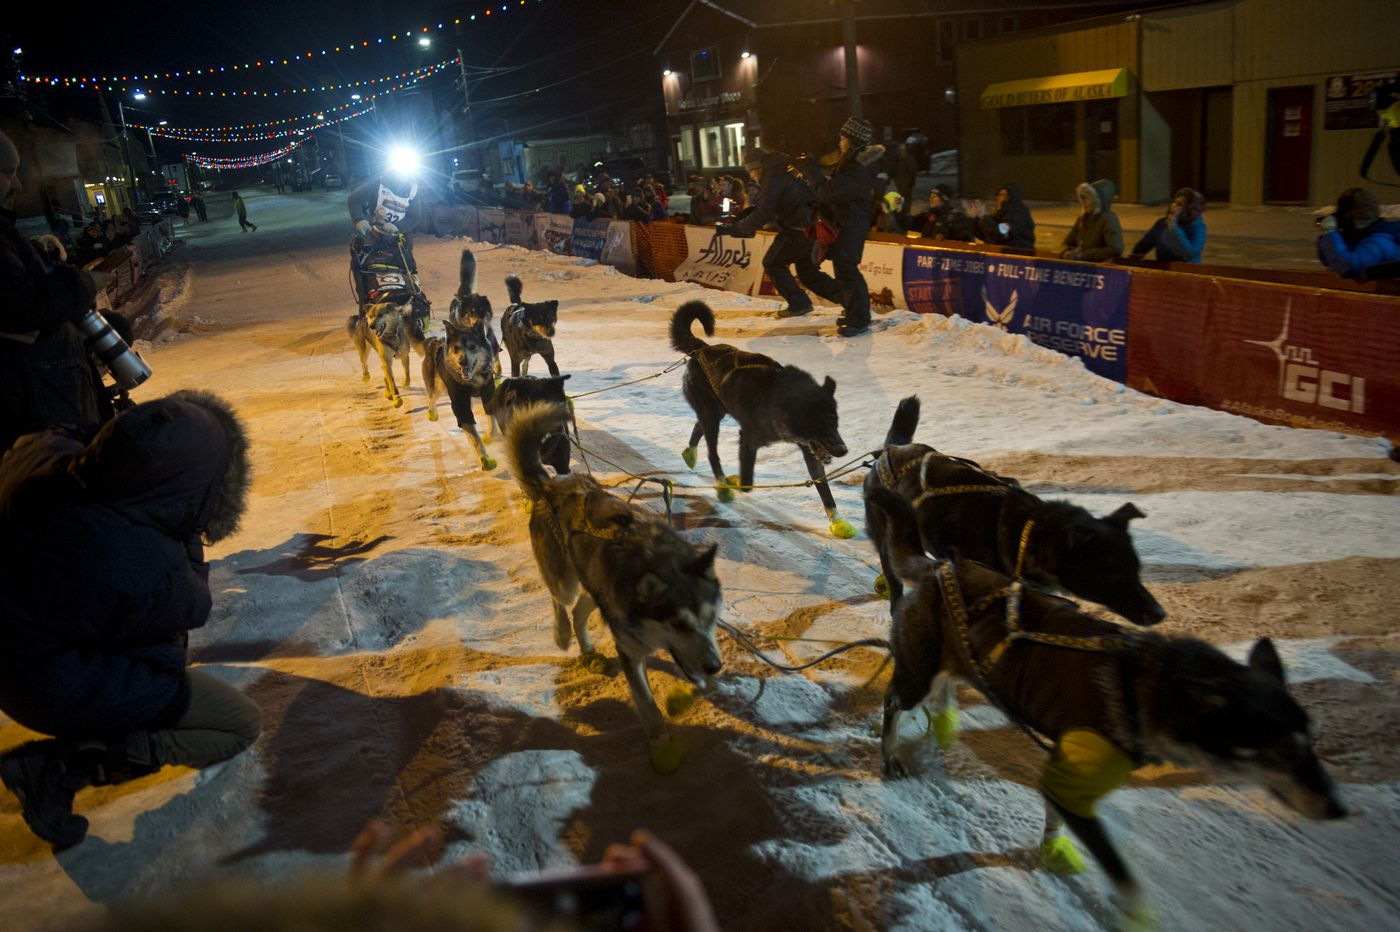 Iditarod musher Brent Sass arrived in Nome in 20th place in the 2016 Iditarod on March 15, 2016, in Nome